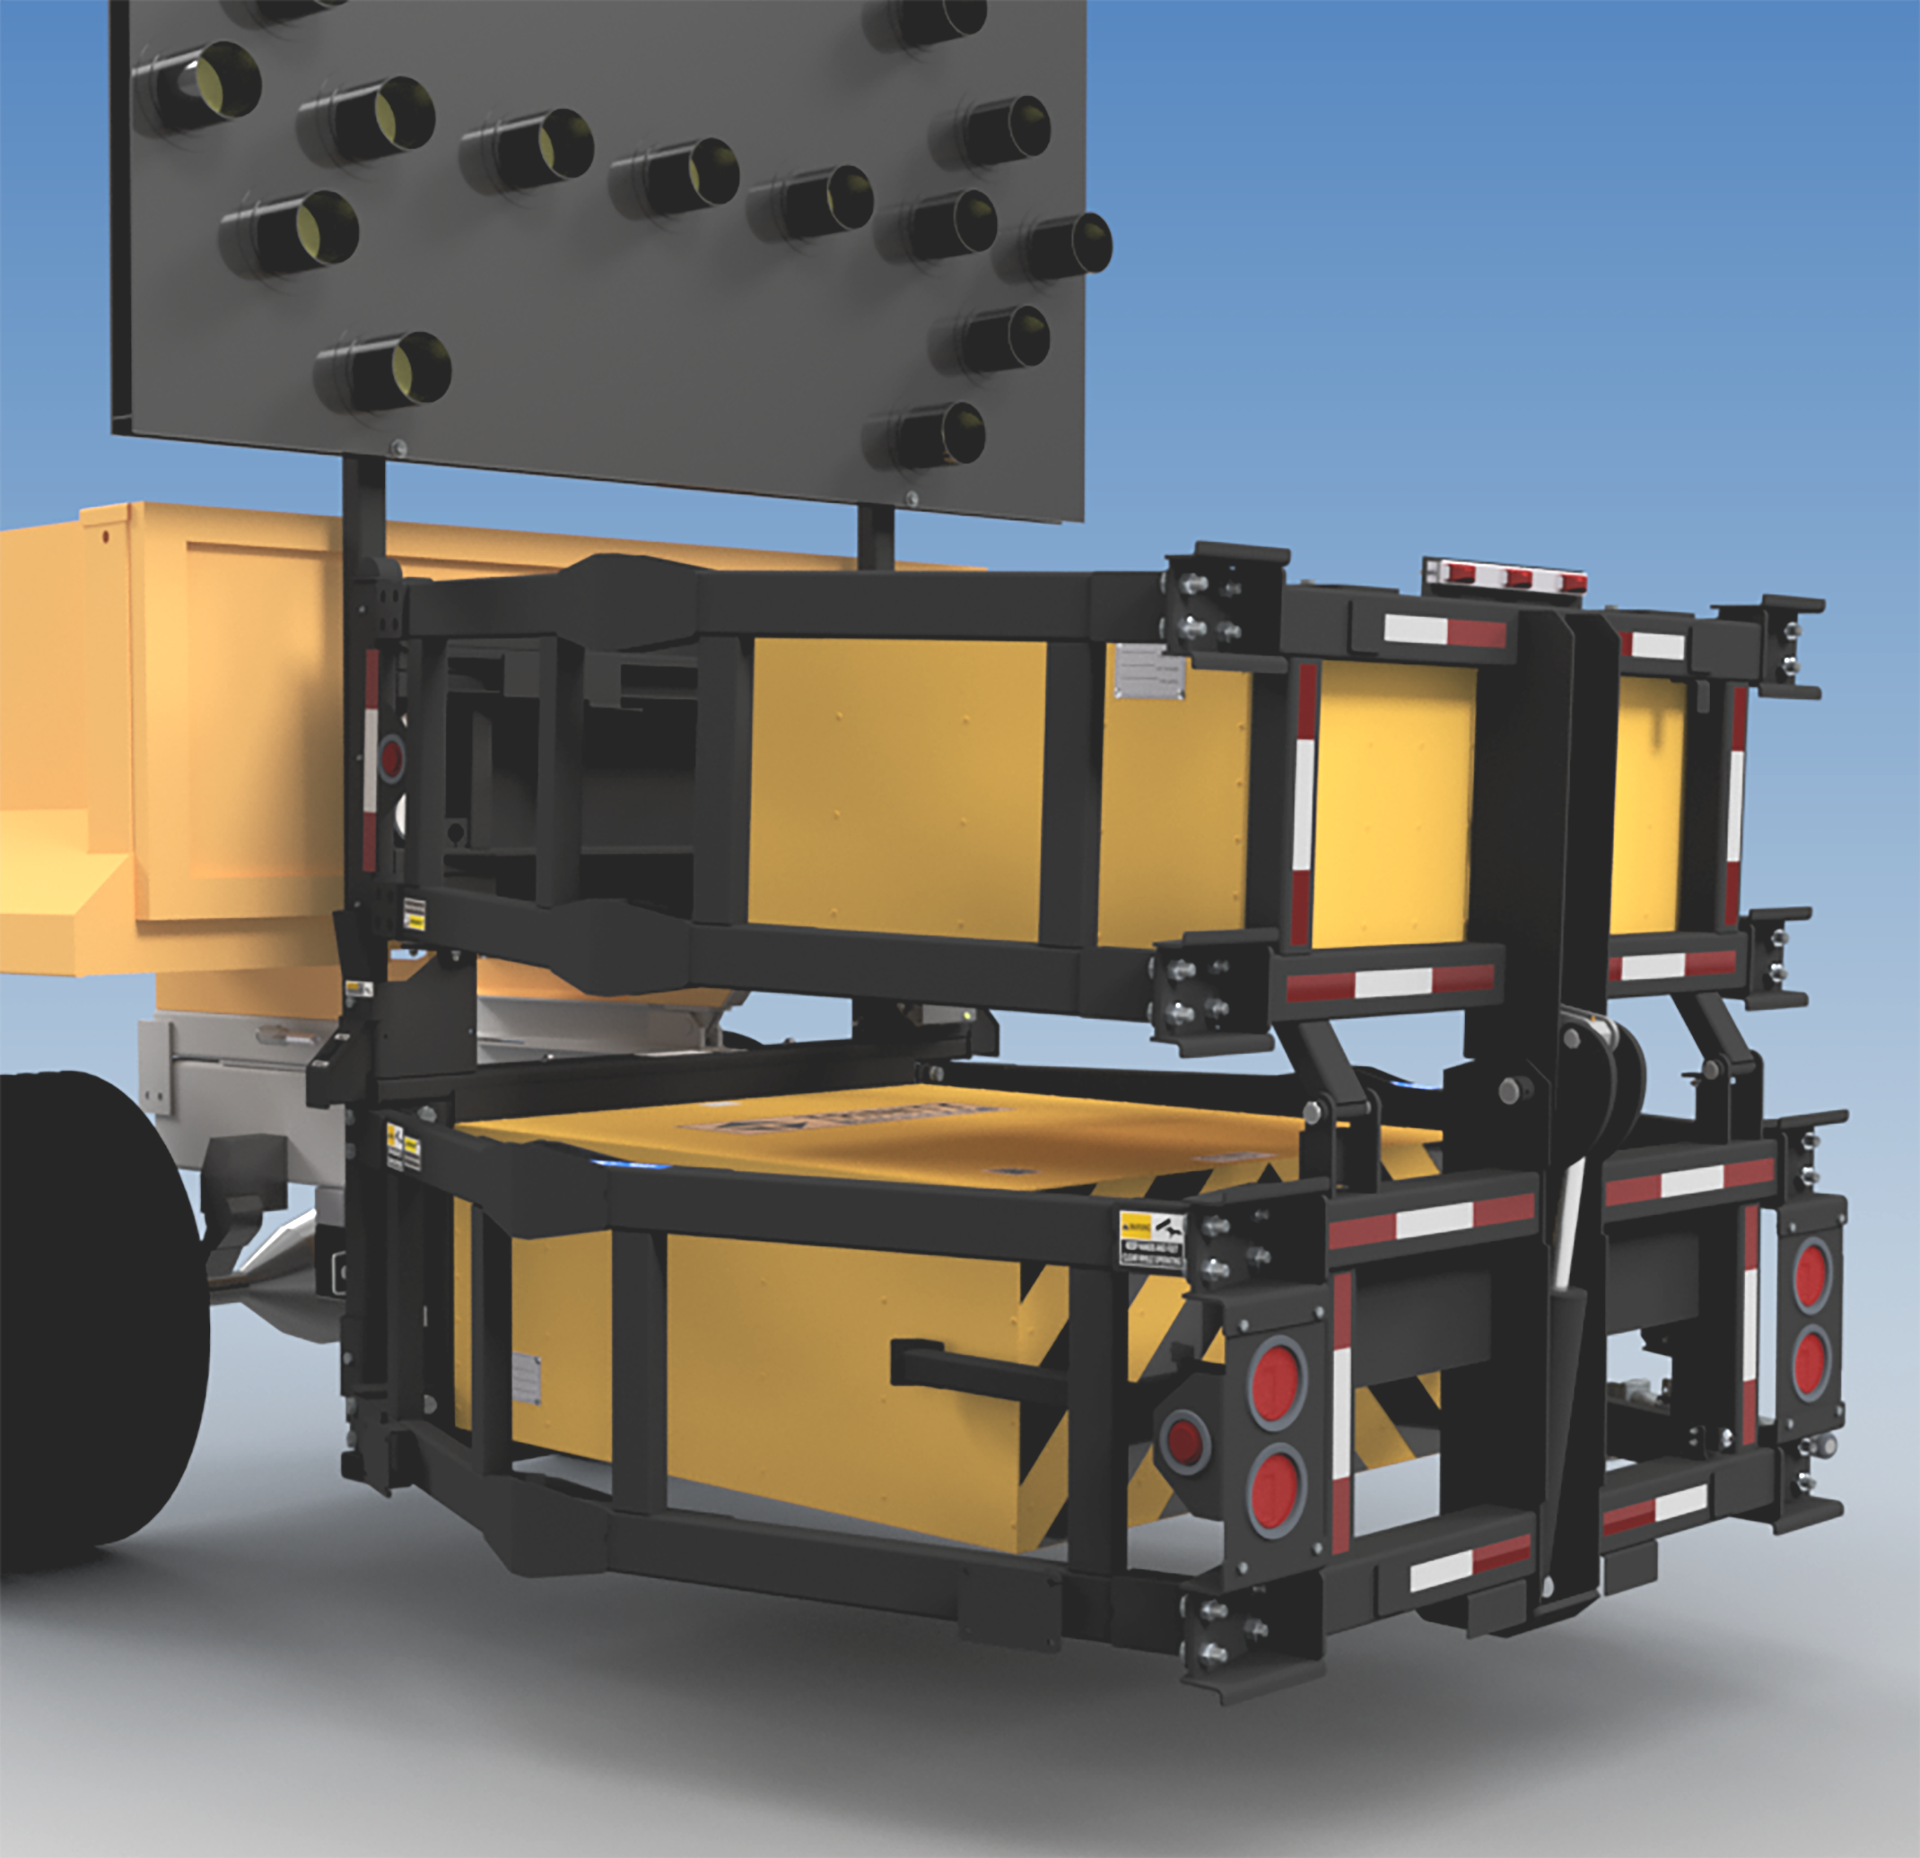 Truck Mounted Attenuator by Trinity Highway